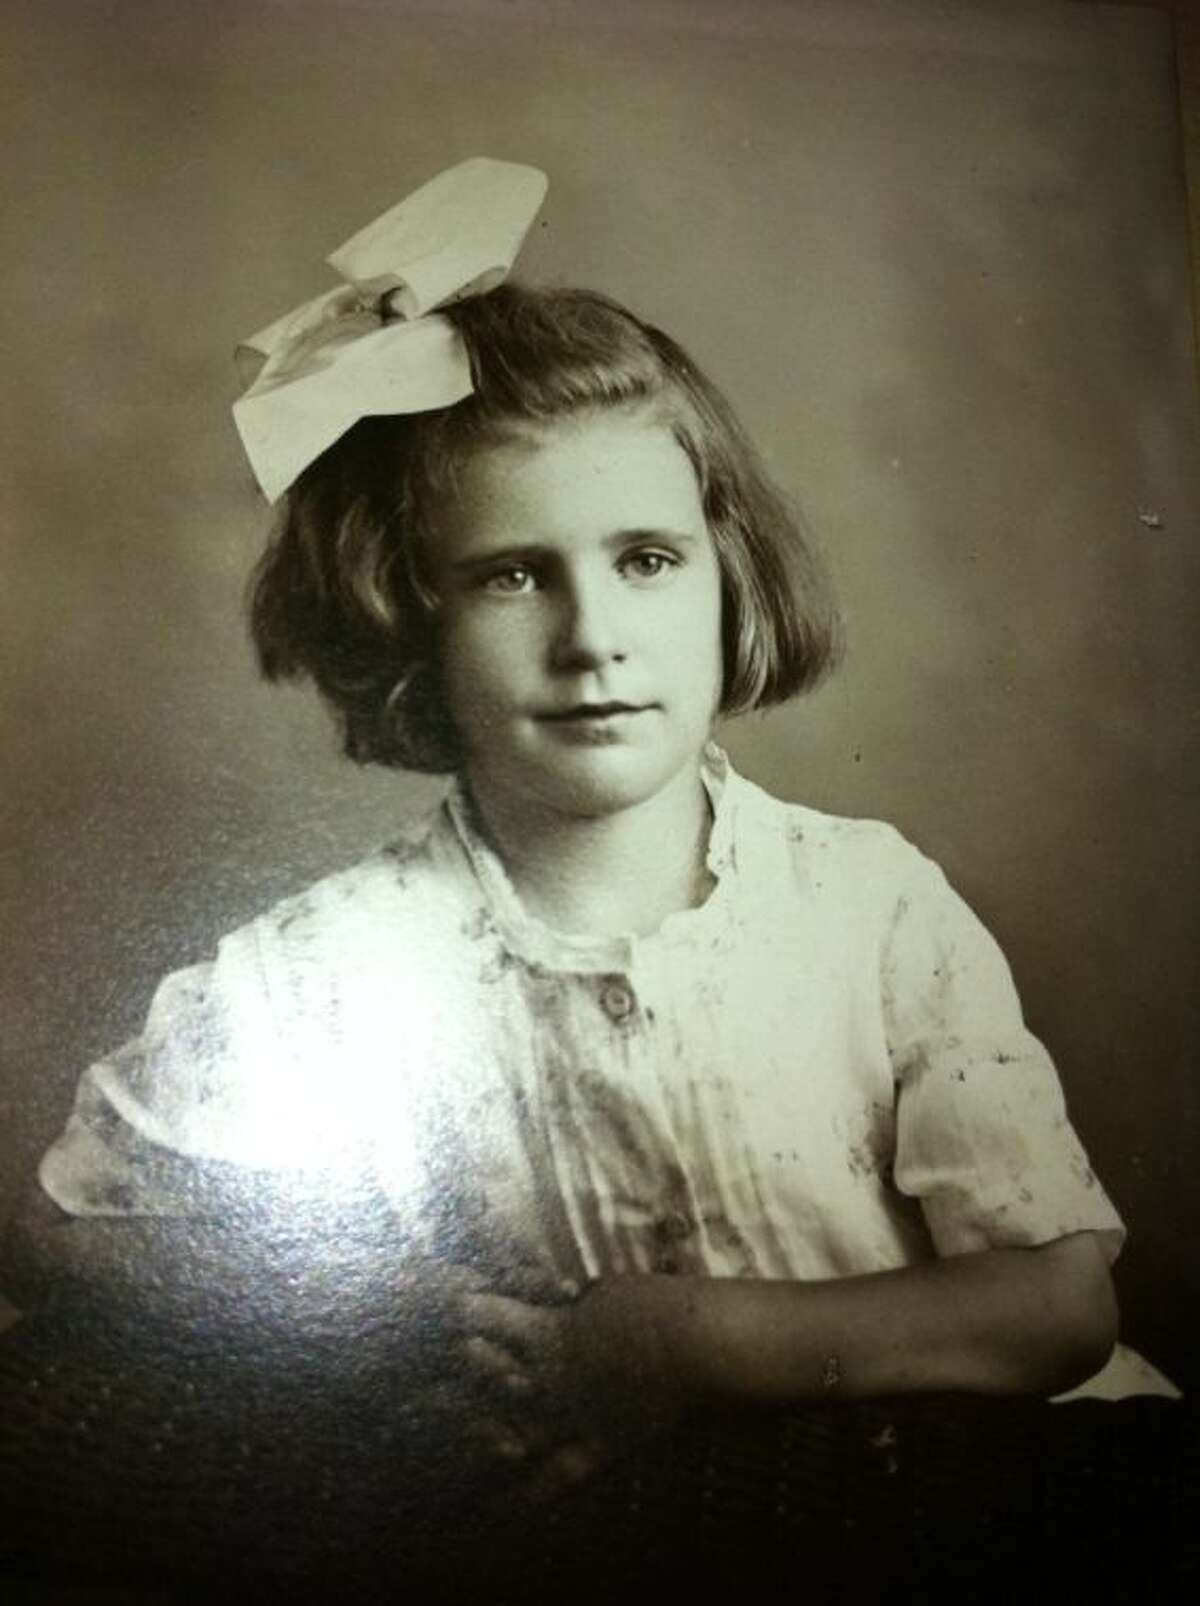 Margaret Ryan as a little girl. She turned 105 on May 16 and celebrated her birthday on May 17 at The Village of Gleannloch Farms in Spring.